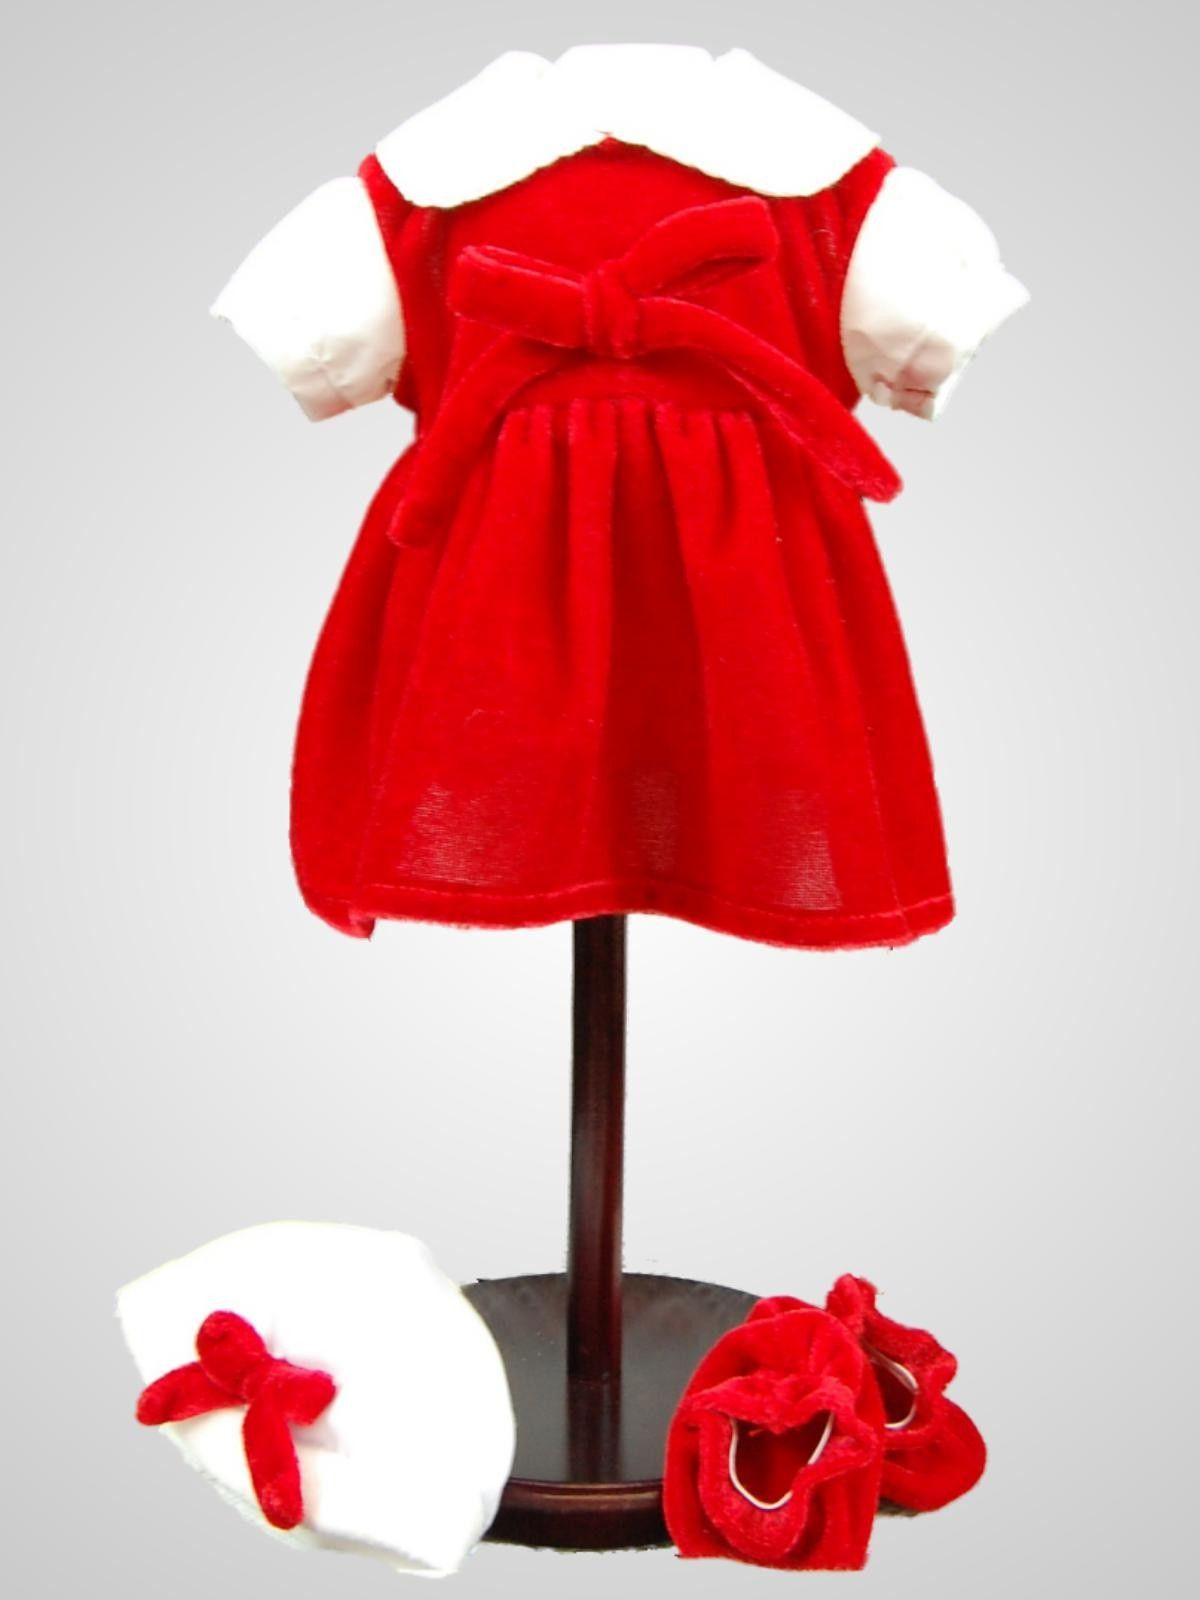 Beautifully detailed doll clothes outfit to fit any Bitty Baby or 15 inch baby dolls. 15 inch Bitty Baby Dolls will look adorable in her red and white complete doll clothes outfit. Velour outfit includes Dress, hat, tights and booties!  Our doll clothes are attractively packaged in a reusable garment bag and hanger for safe keeping.  Designed and manufactured by us, The Queen's Treasures ®.